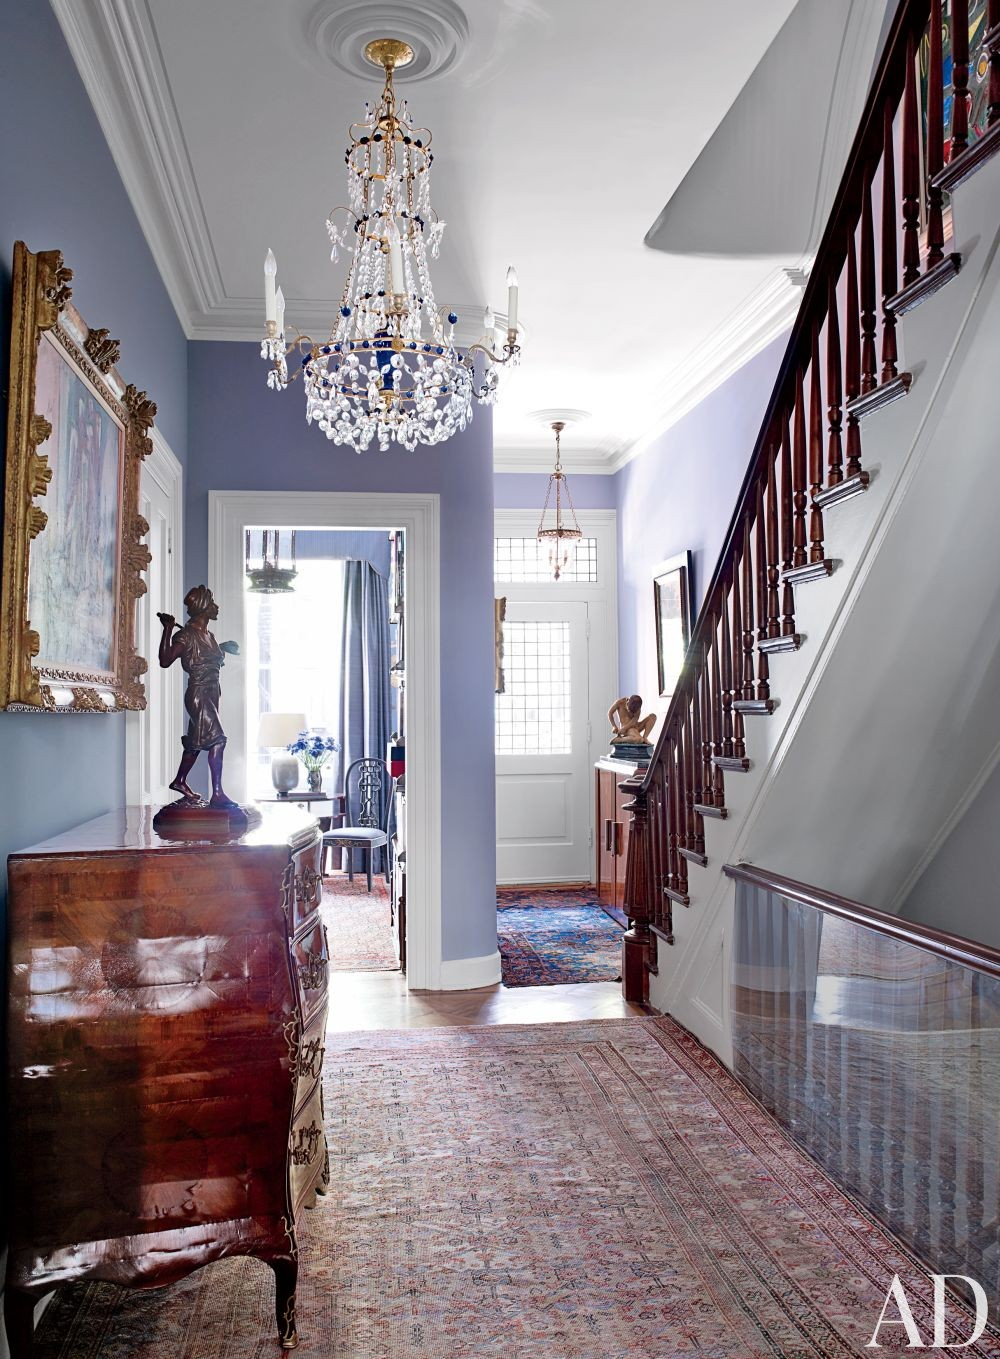 Traditional Staircase/Hallway by McGeehan Design Inc. and Jaklitsch/Gardner  Architects in New York, New York